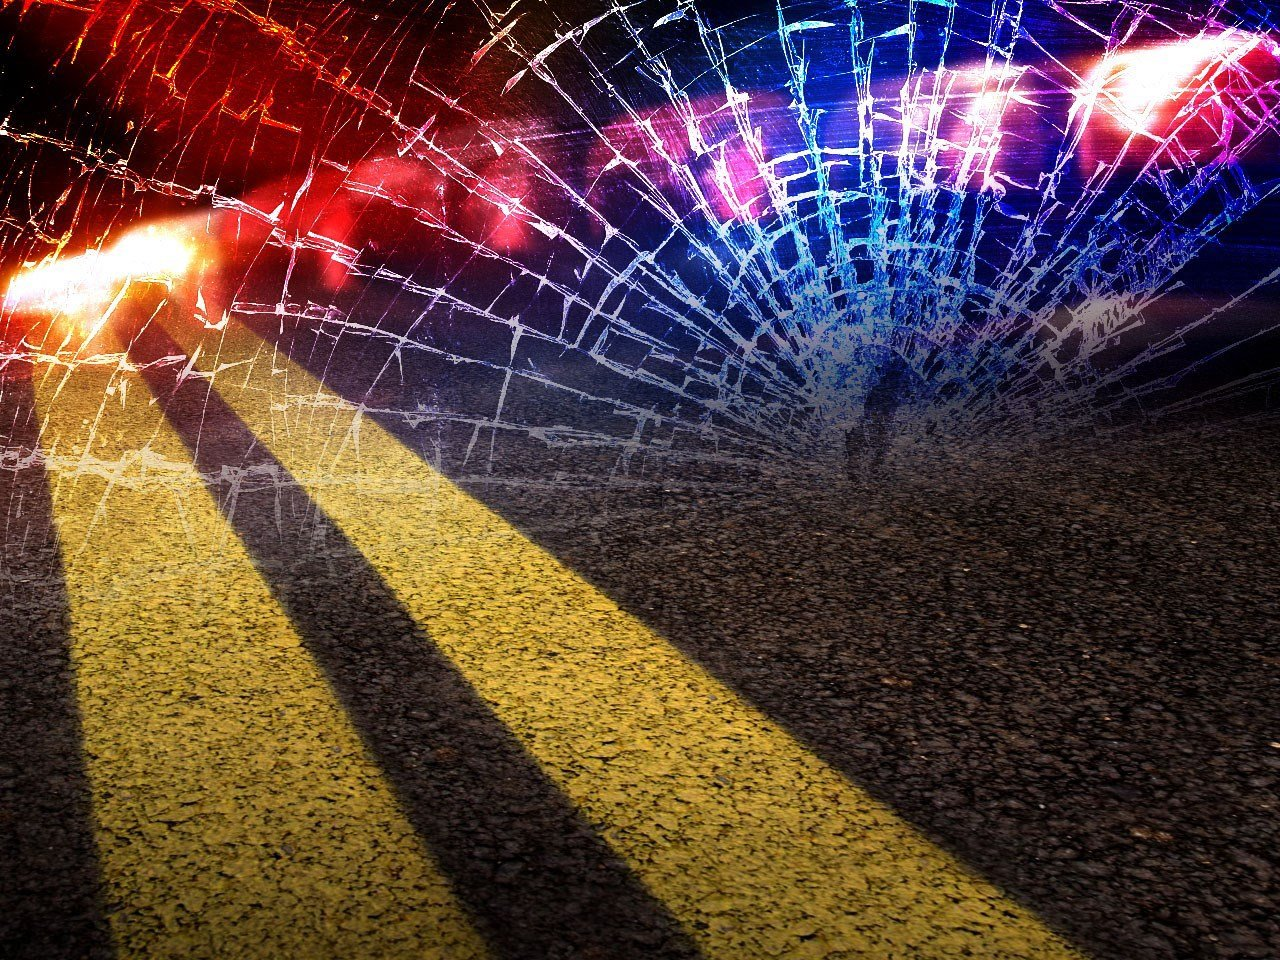 Alabama mobile county semmes - Motorcyclist Killed In Accident That Shut Down I 10 In Ocean Springs